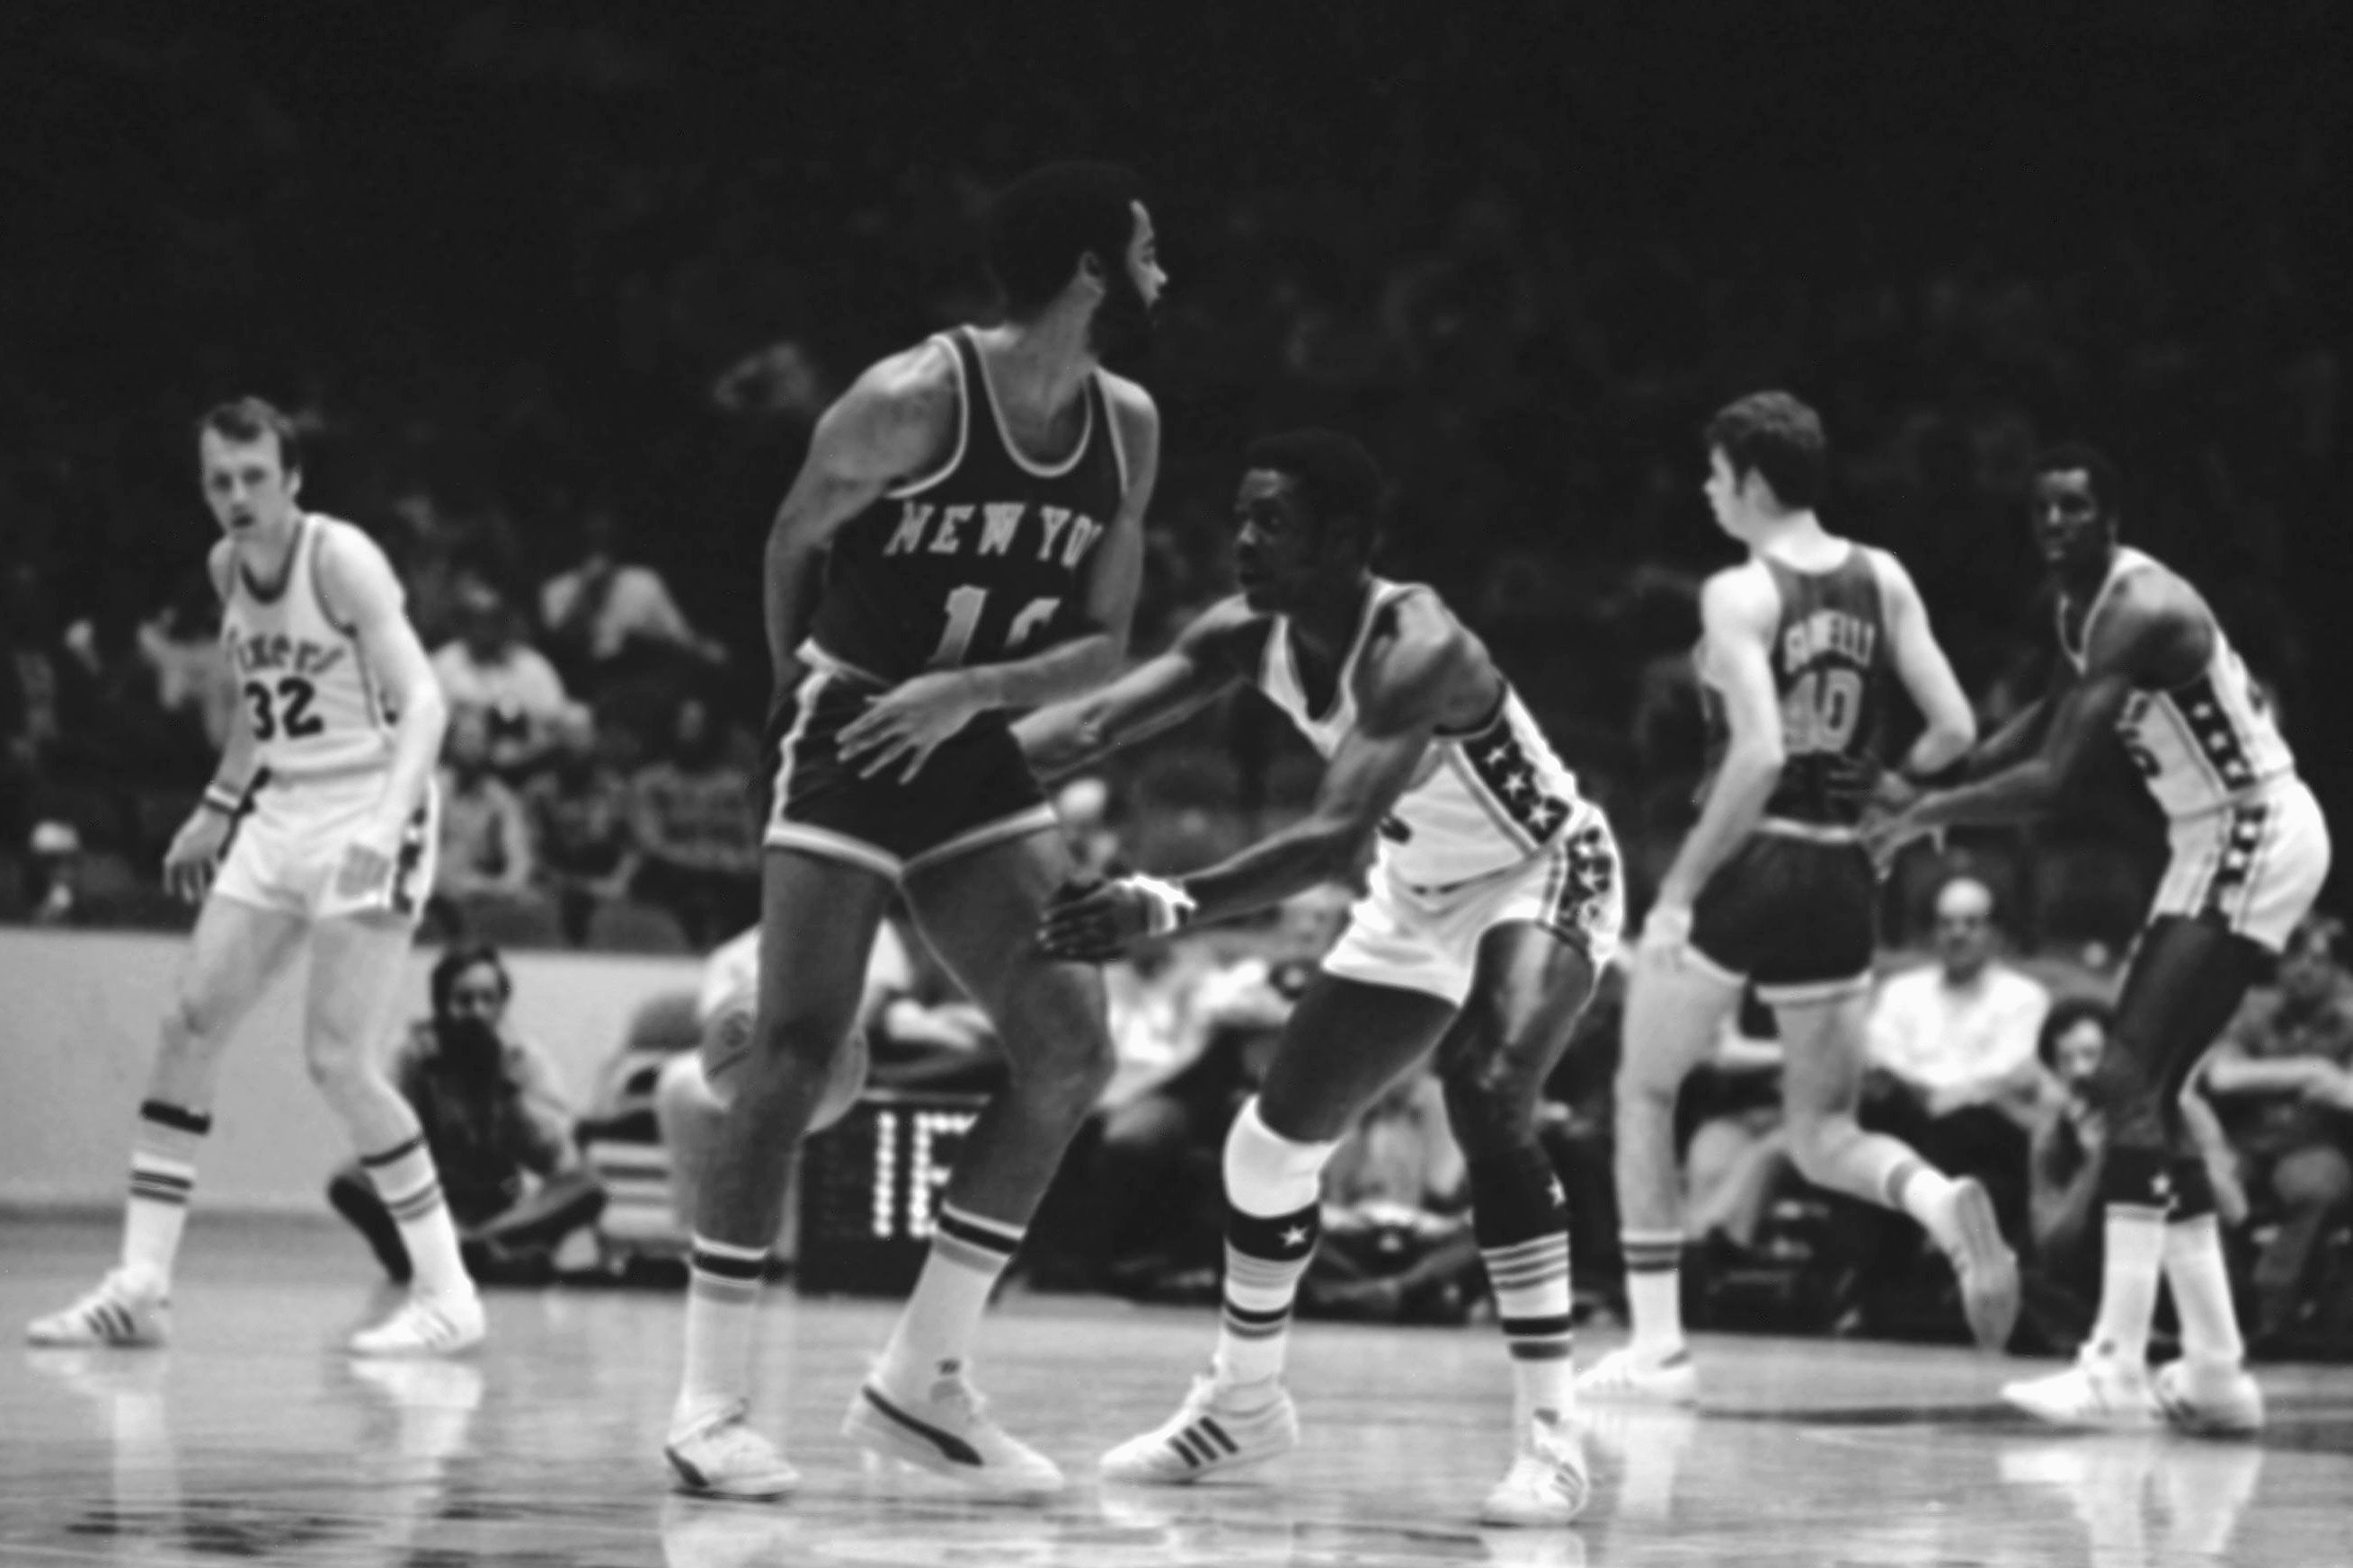 Philadelphia 76ers guard Fred Carter (3) reaches for the ball, but New York Knicks guard Walt Frazier (10) flicks it behind his back to a teammate in the first quarter of an NBA game in Philadelphia on Wednesday, Nov. 20, 1974.